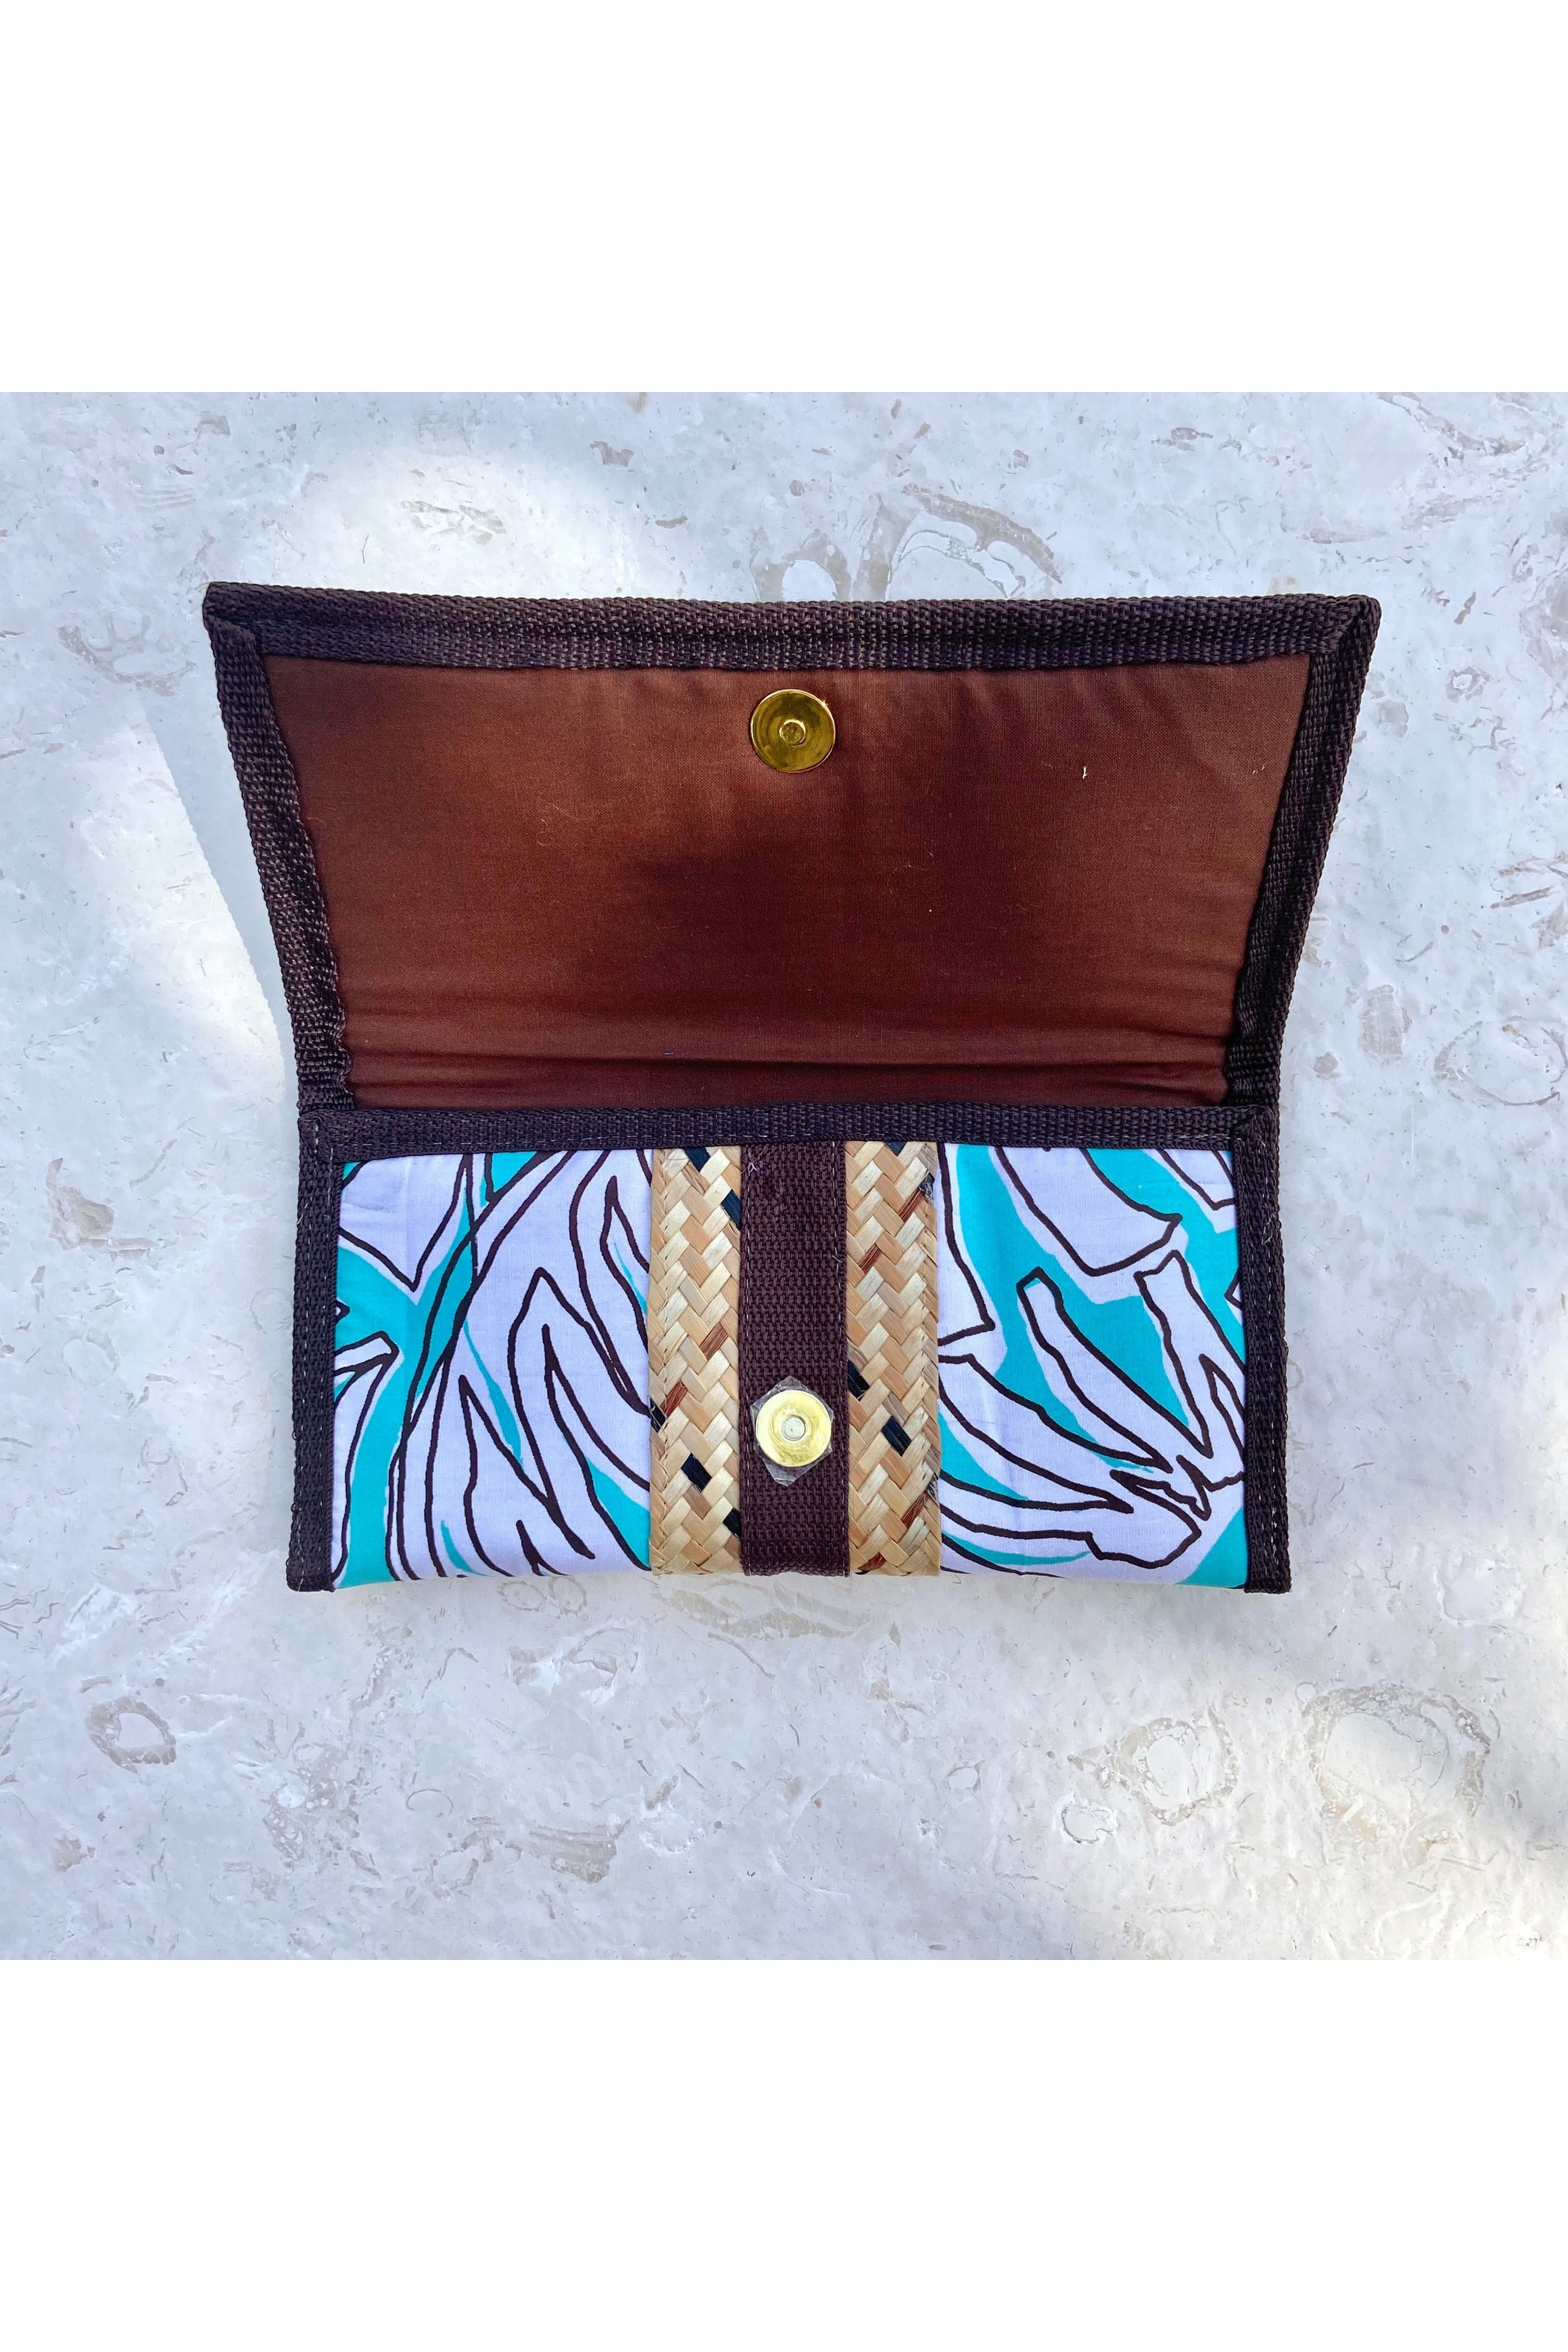 Aqua Palm Fronds Printed Clutch - Hausofassembly